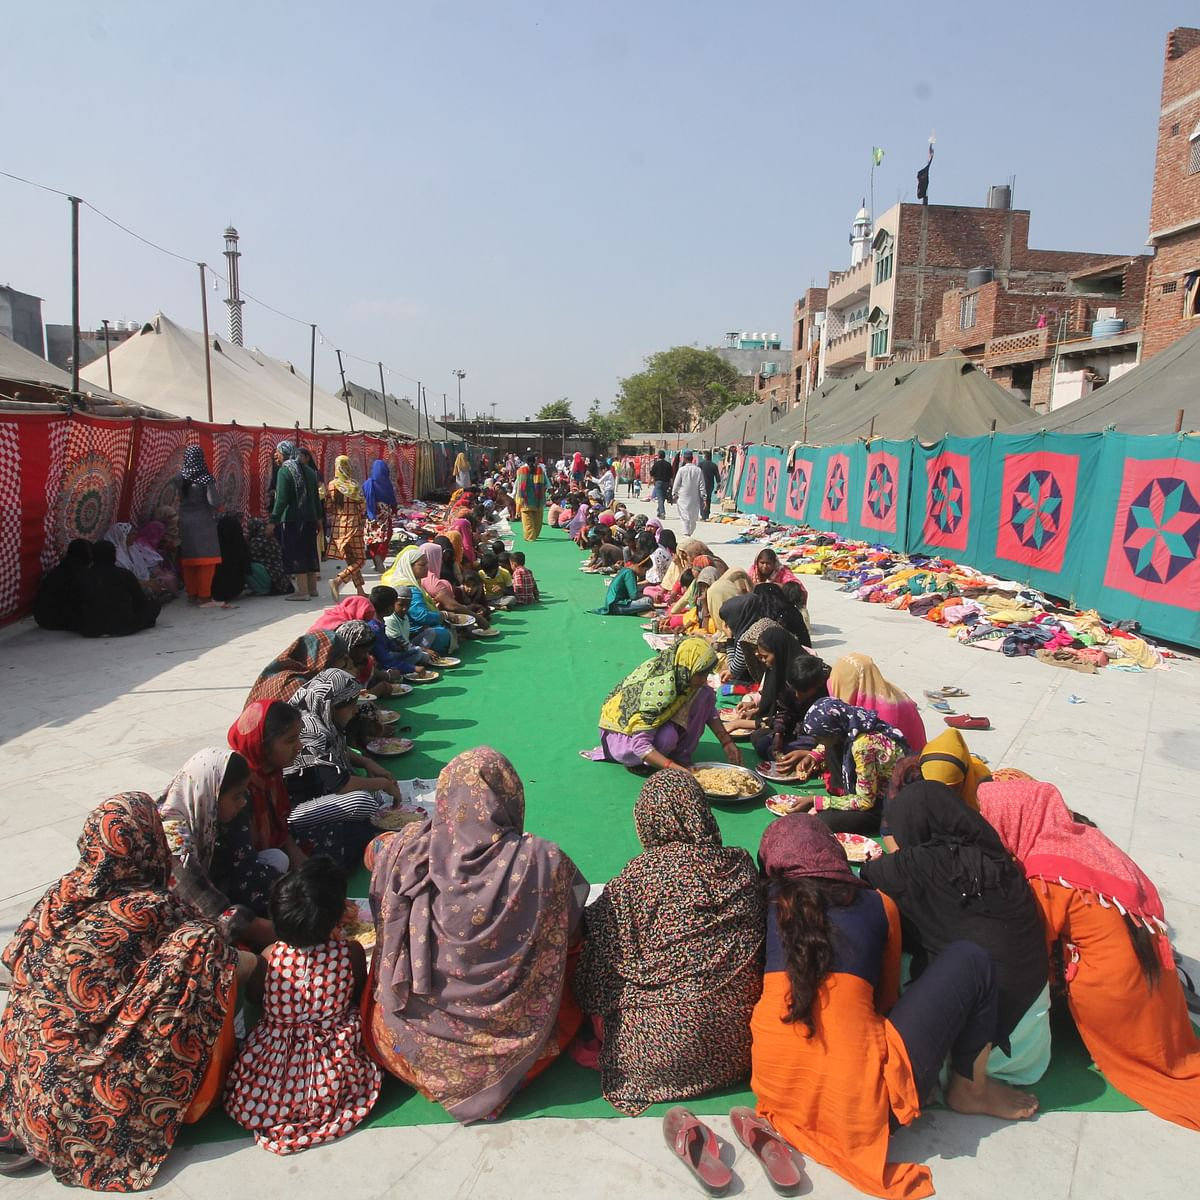 Delhi pogrom: First relief camp set up in Mustafabad woefully inadequate; no govt role except providing tents